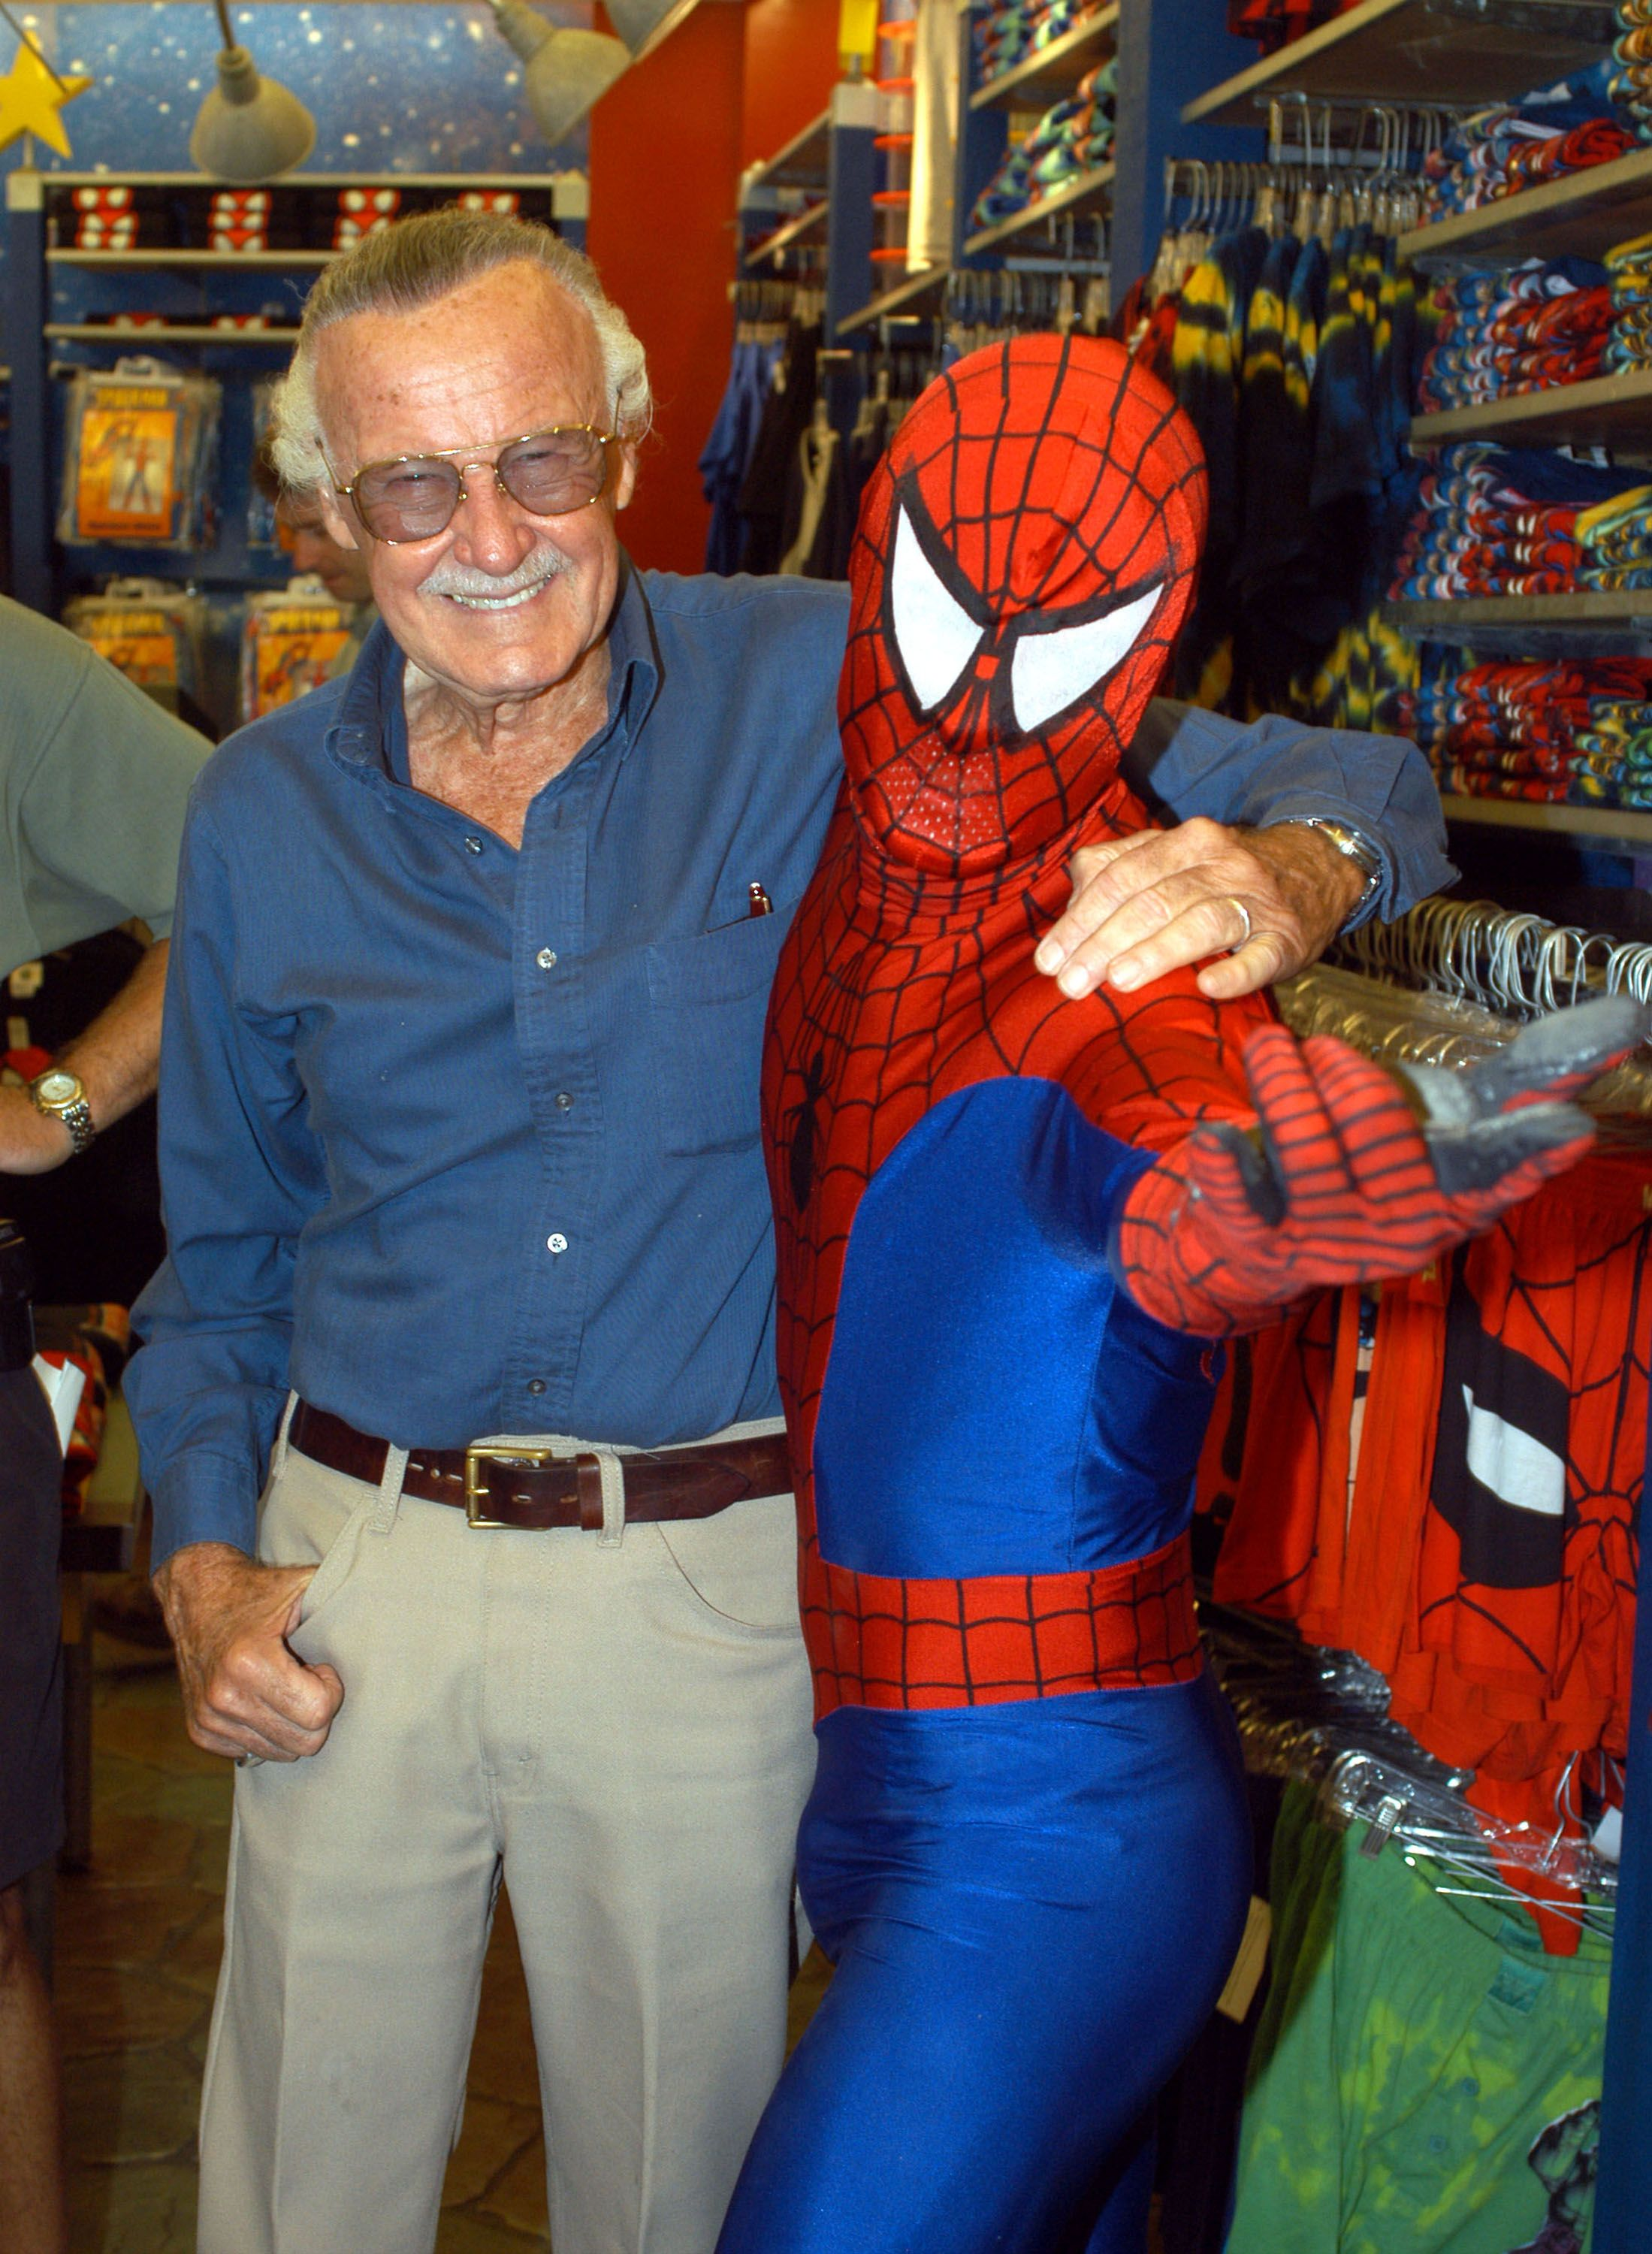 Stan Lee with Spider-Man during the Spider-Man 40th Birthday celebration at Universal Studios on August 13, 2002 in Universal City, California. | Source: Getty Images